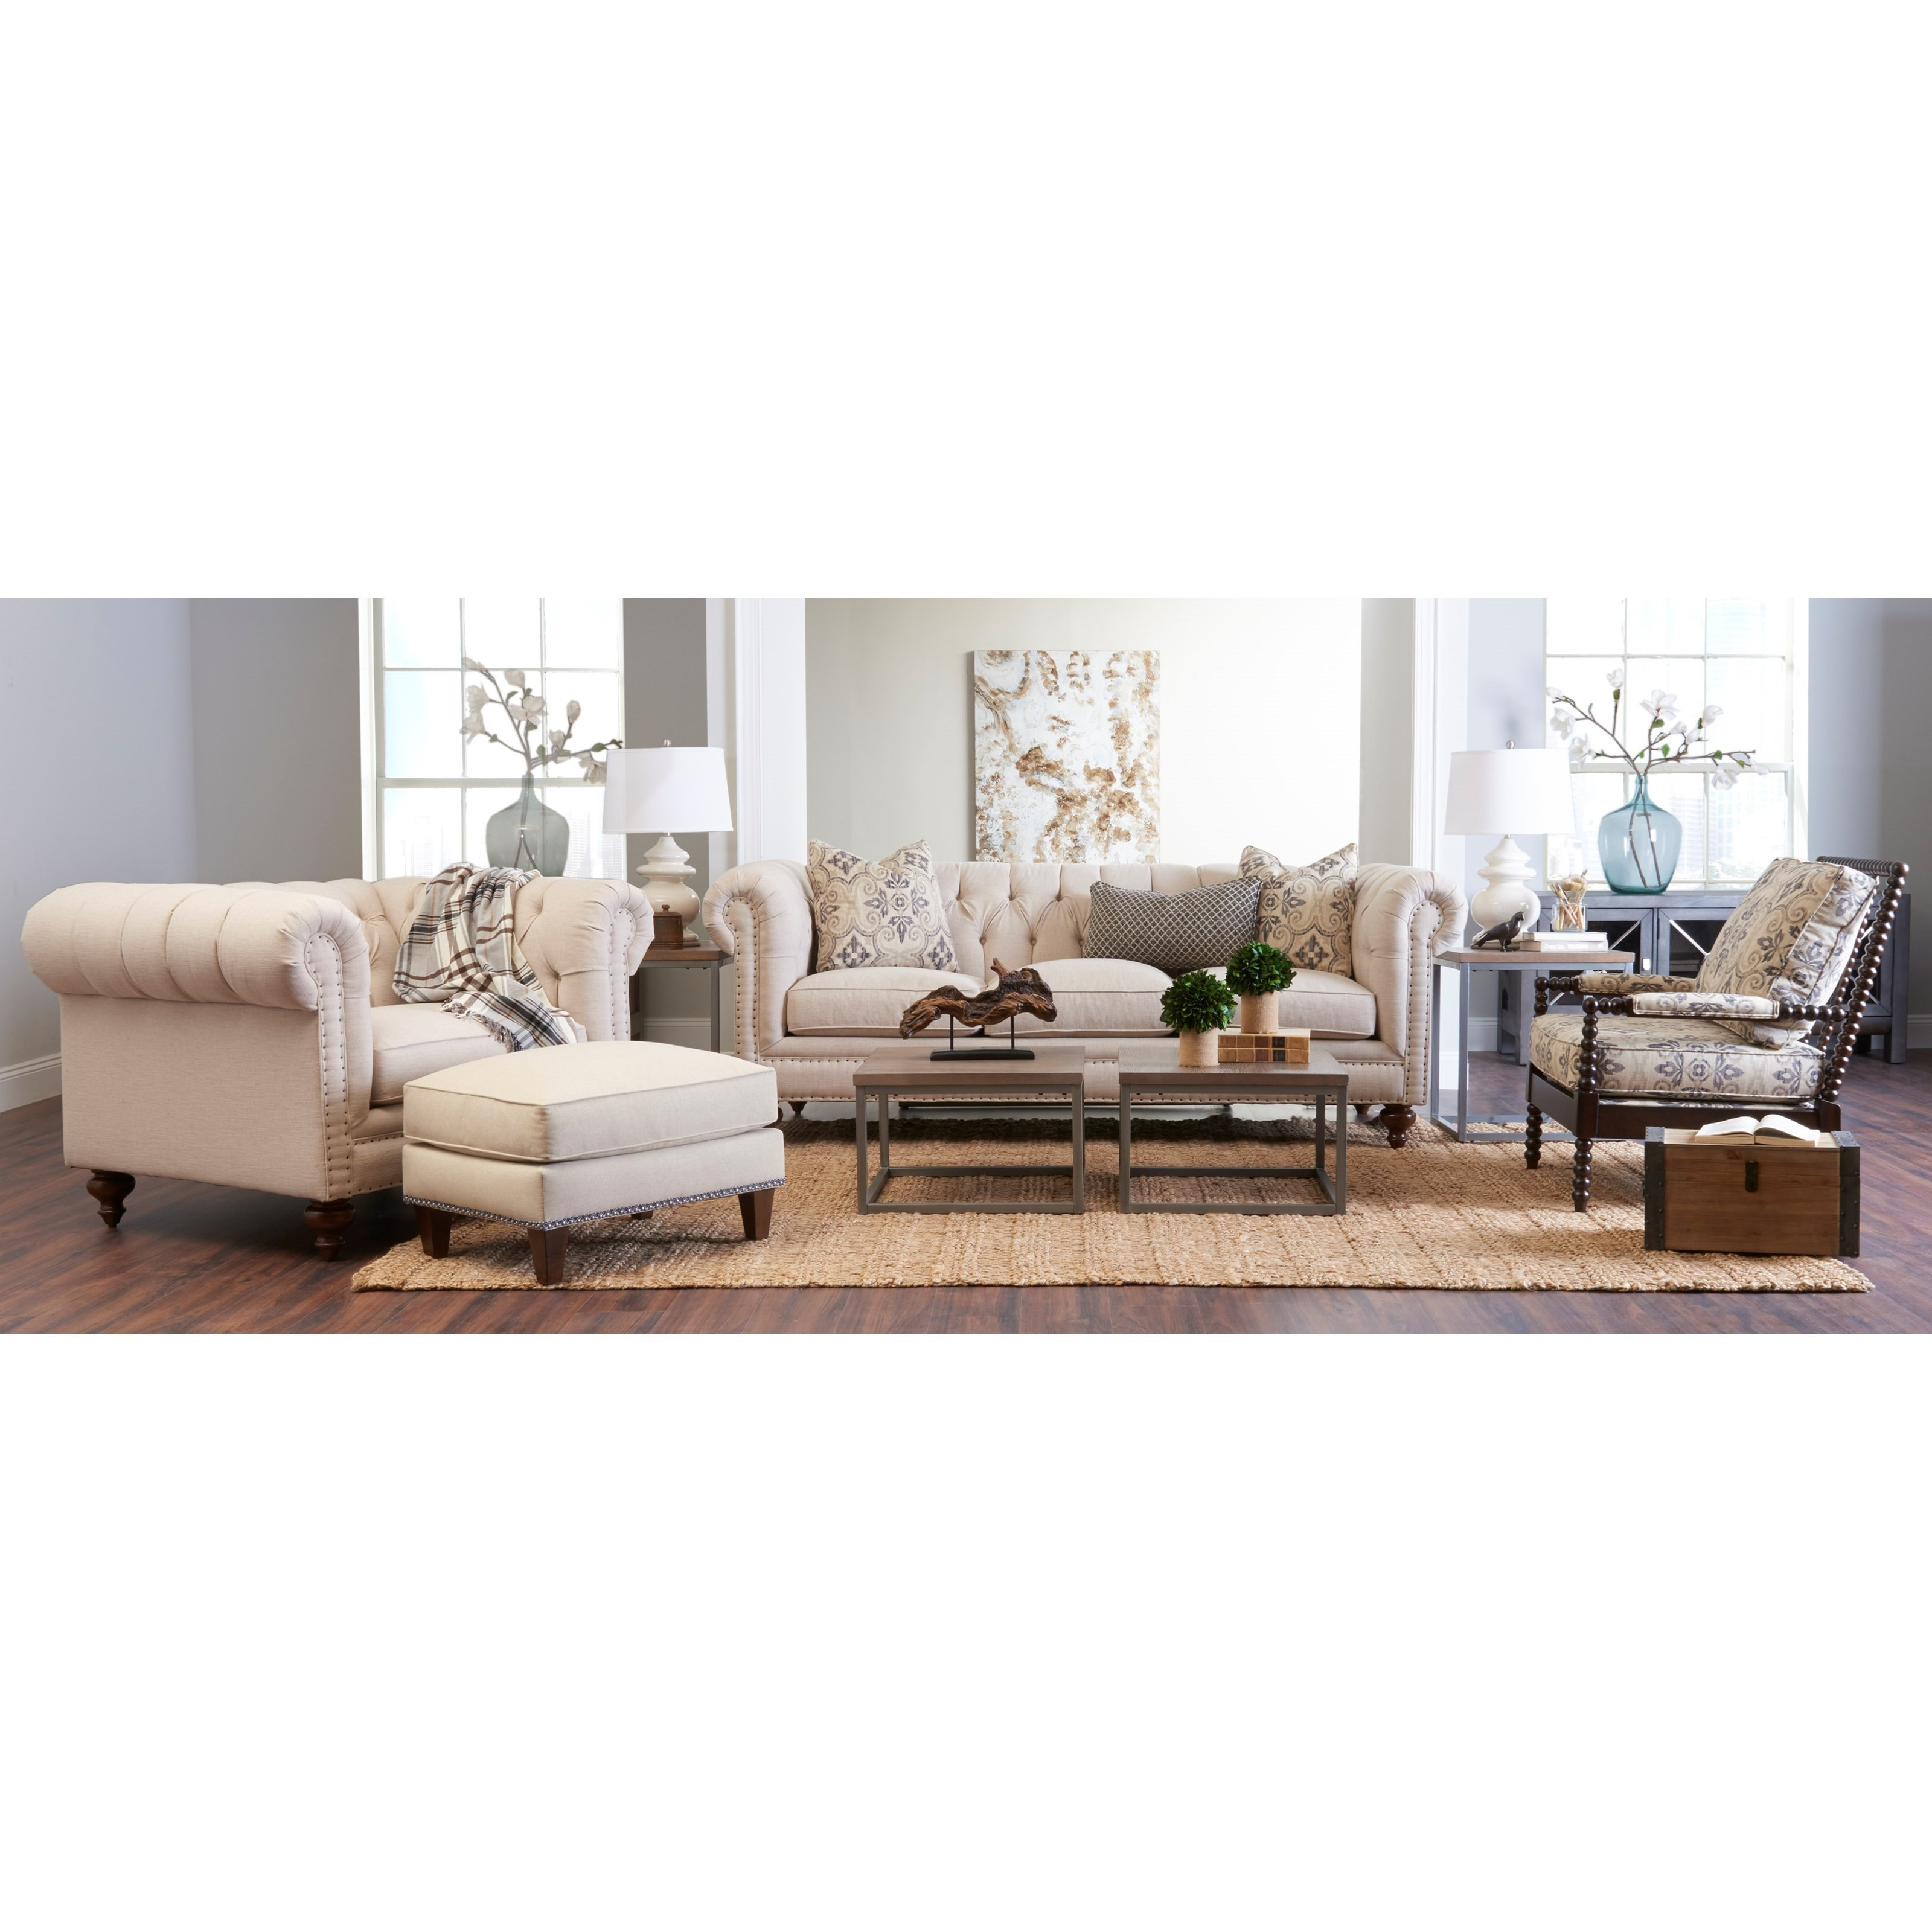 Charlotte Living Room Group by Klaussner at Johnny Janosik